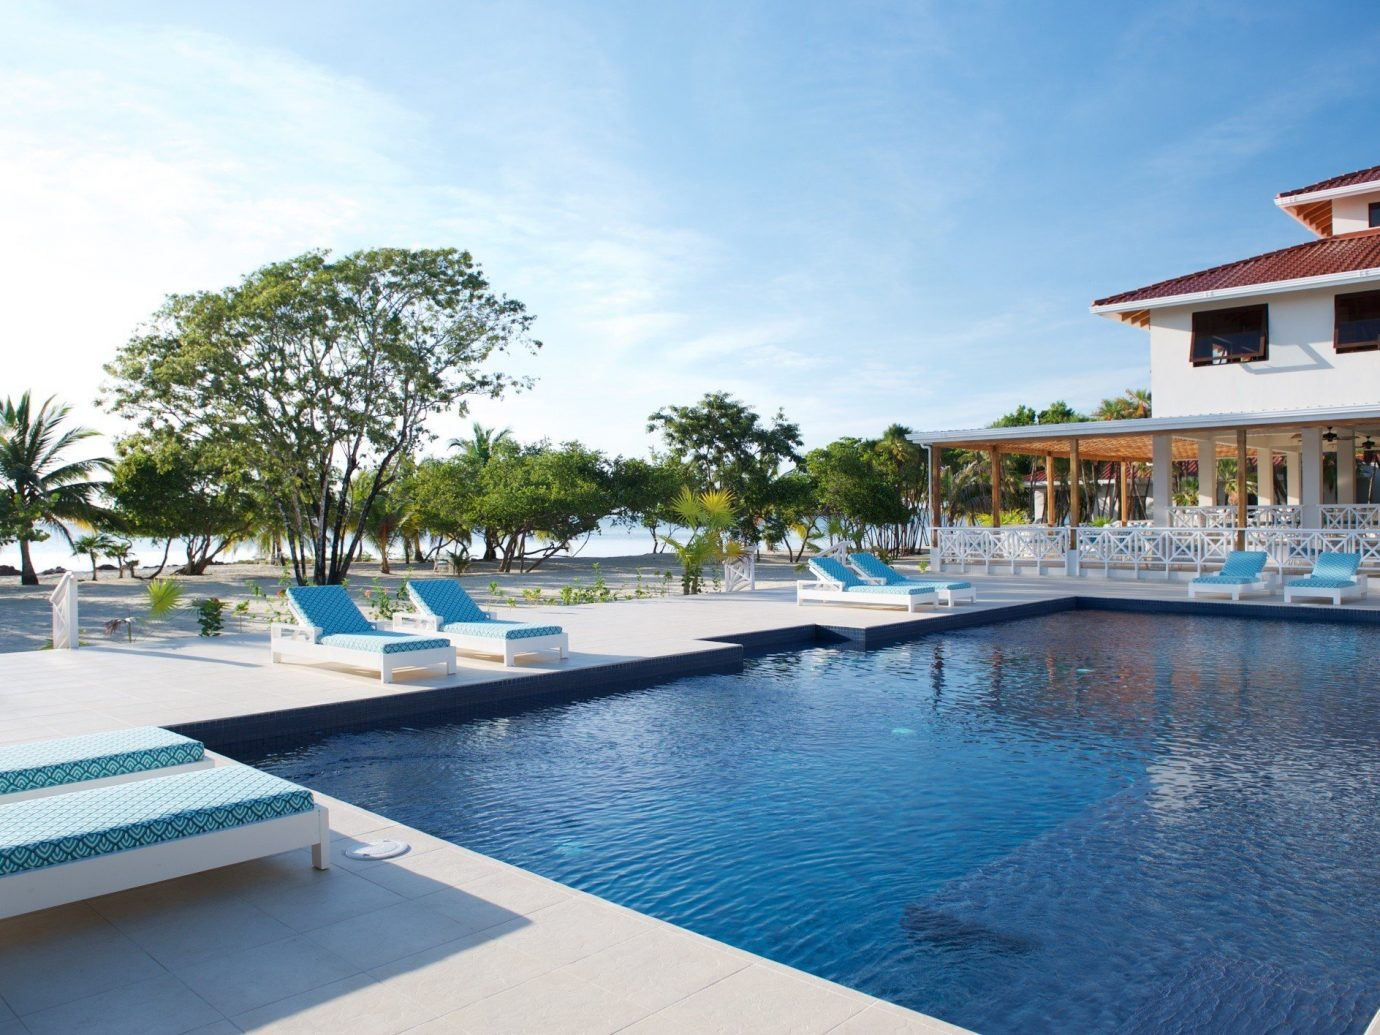 Pool At Naia Resort And Spa In Placencia, Belize